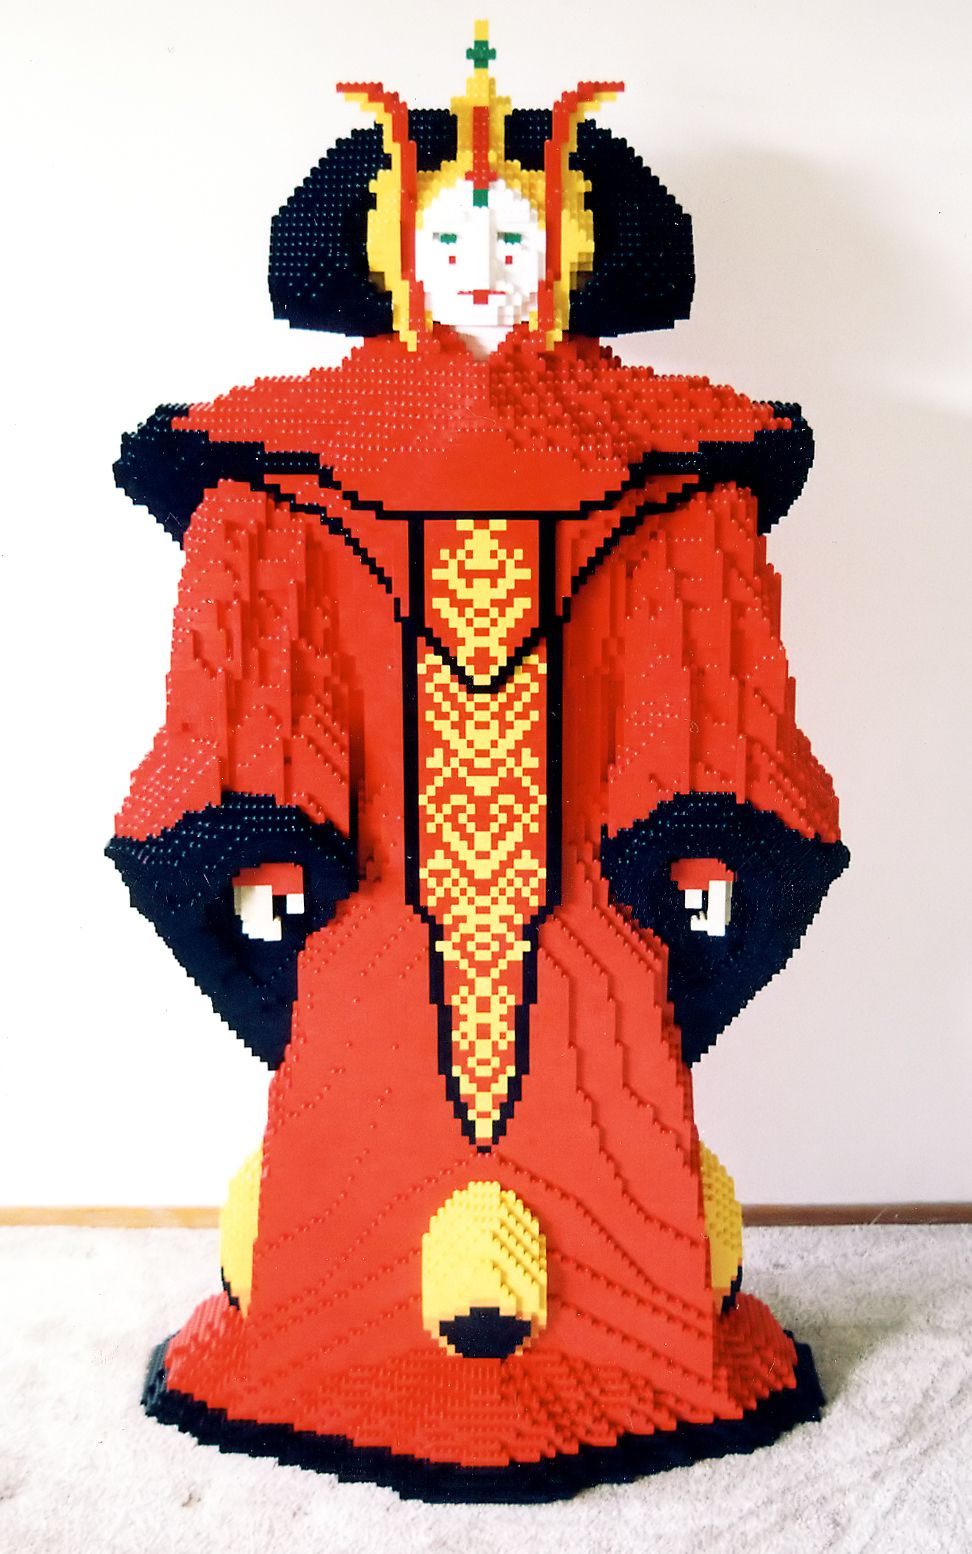 How are Lego sculptures in full size 22